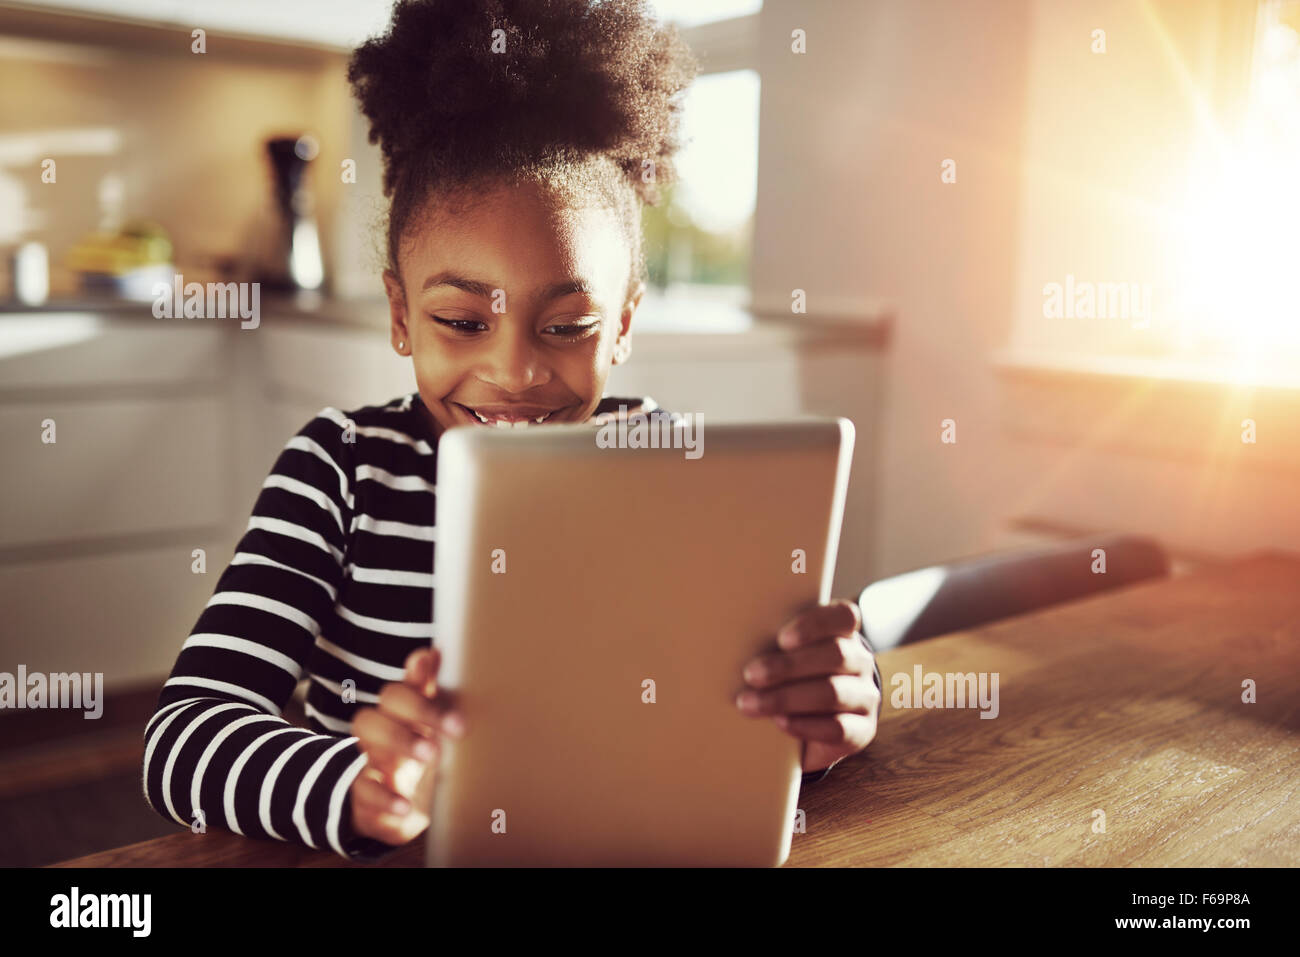 Happy little ethnic black girl sitting at home in the kitchen reading on a tablet computer grinning with pleasure, - Stock Image